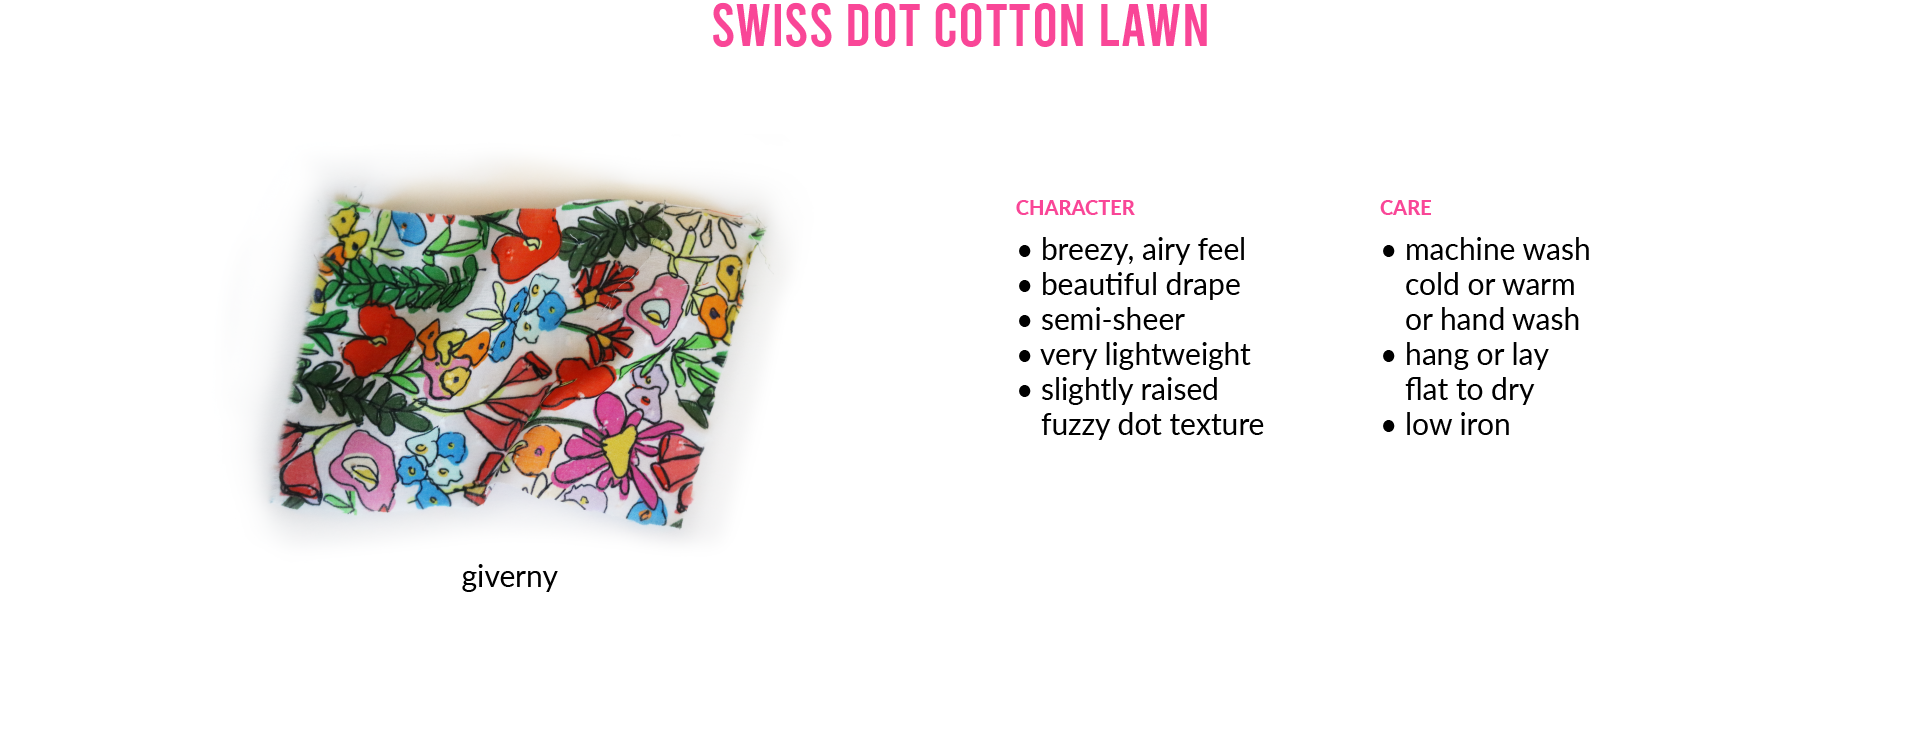 Swiss Dot Cotton LawnCHARACTER • breezy, airy feel • beautiful drape • semi-sheer • very lightweight • slightly raised fuzzy dot texture CARE • machine wash cold or warm or hand wash • hang or lay flat to dry • low iron